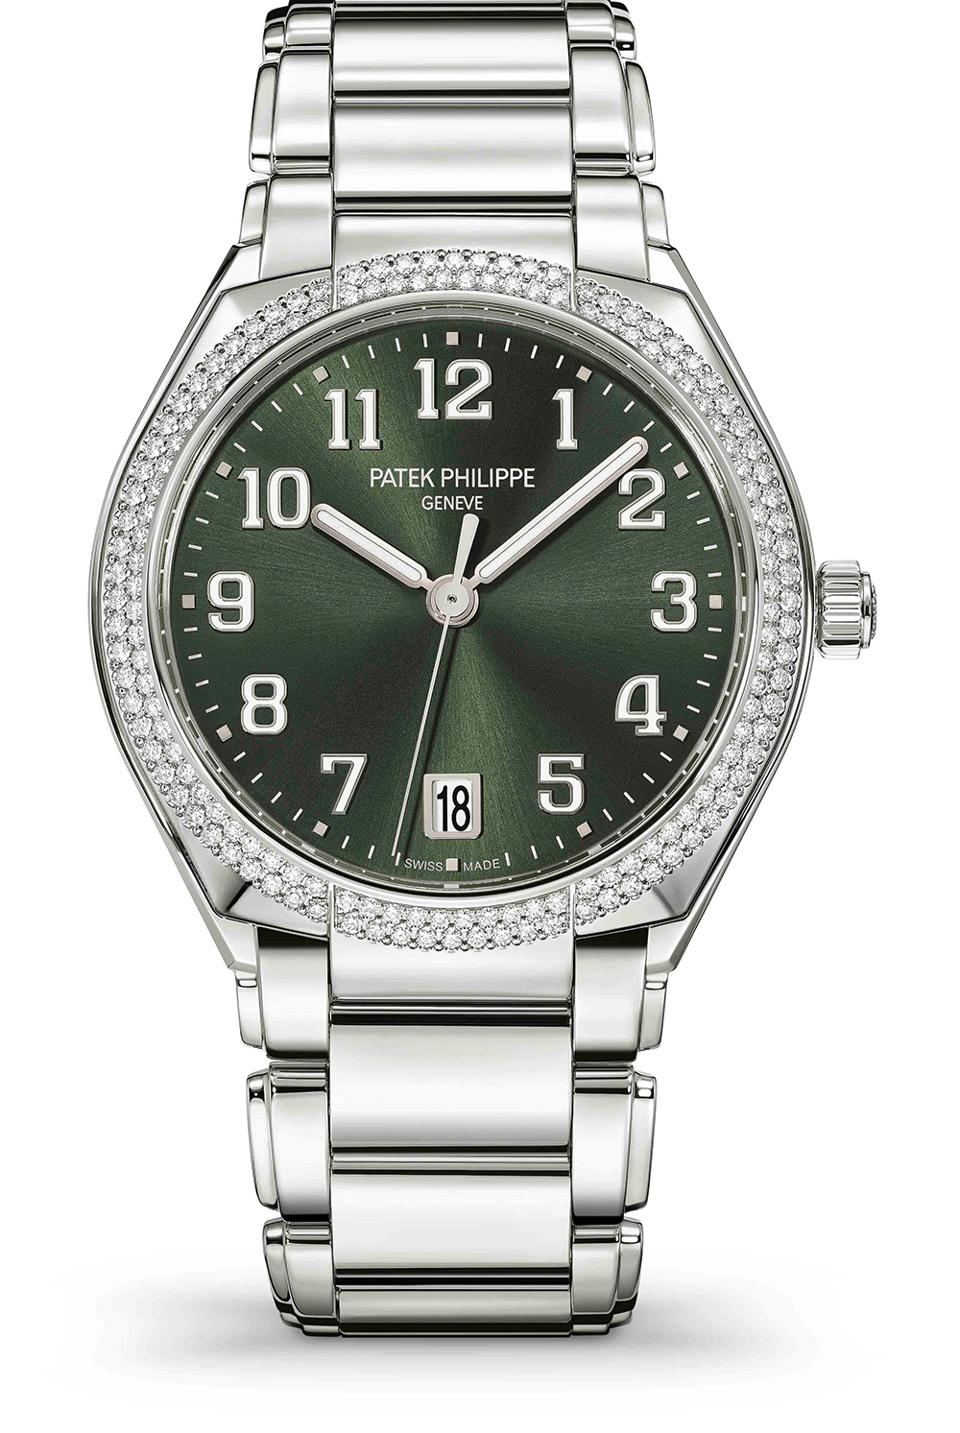 The Patek Philippe Twenty-4 Automatic in steel with olive green dial.